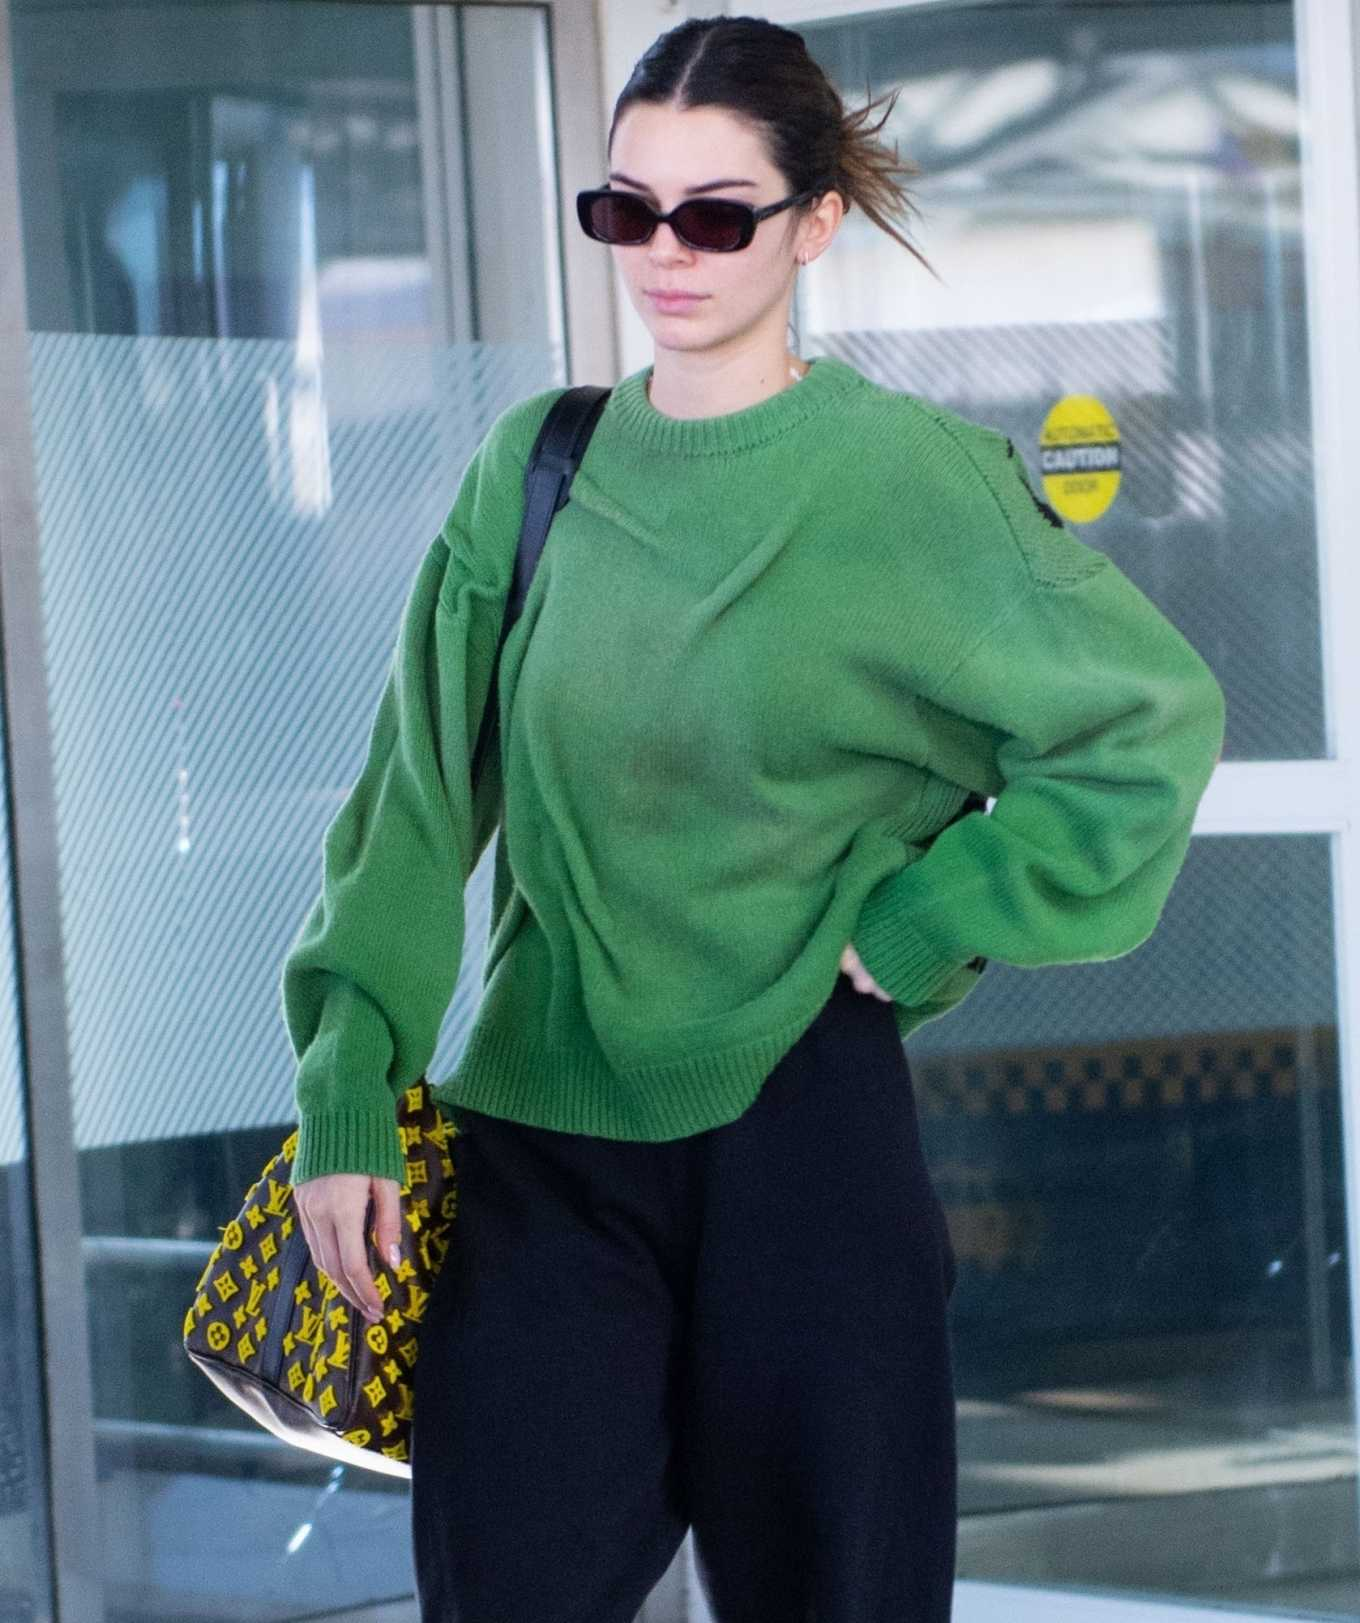 Kendall Jenner - Arrives at JFK airport in New York